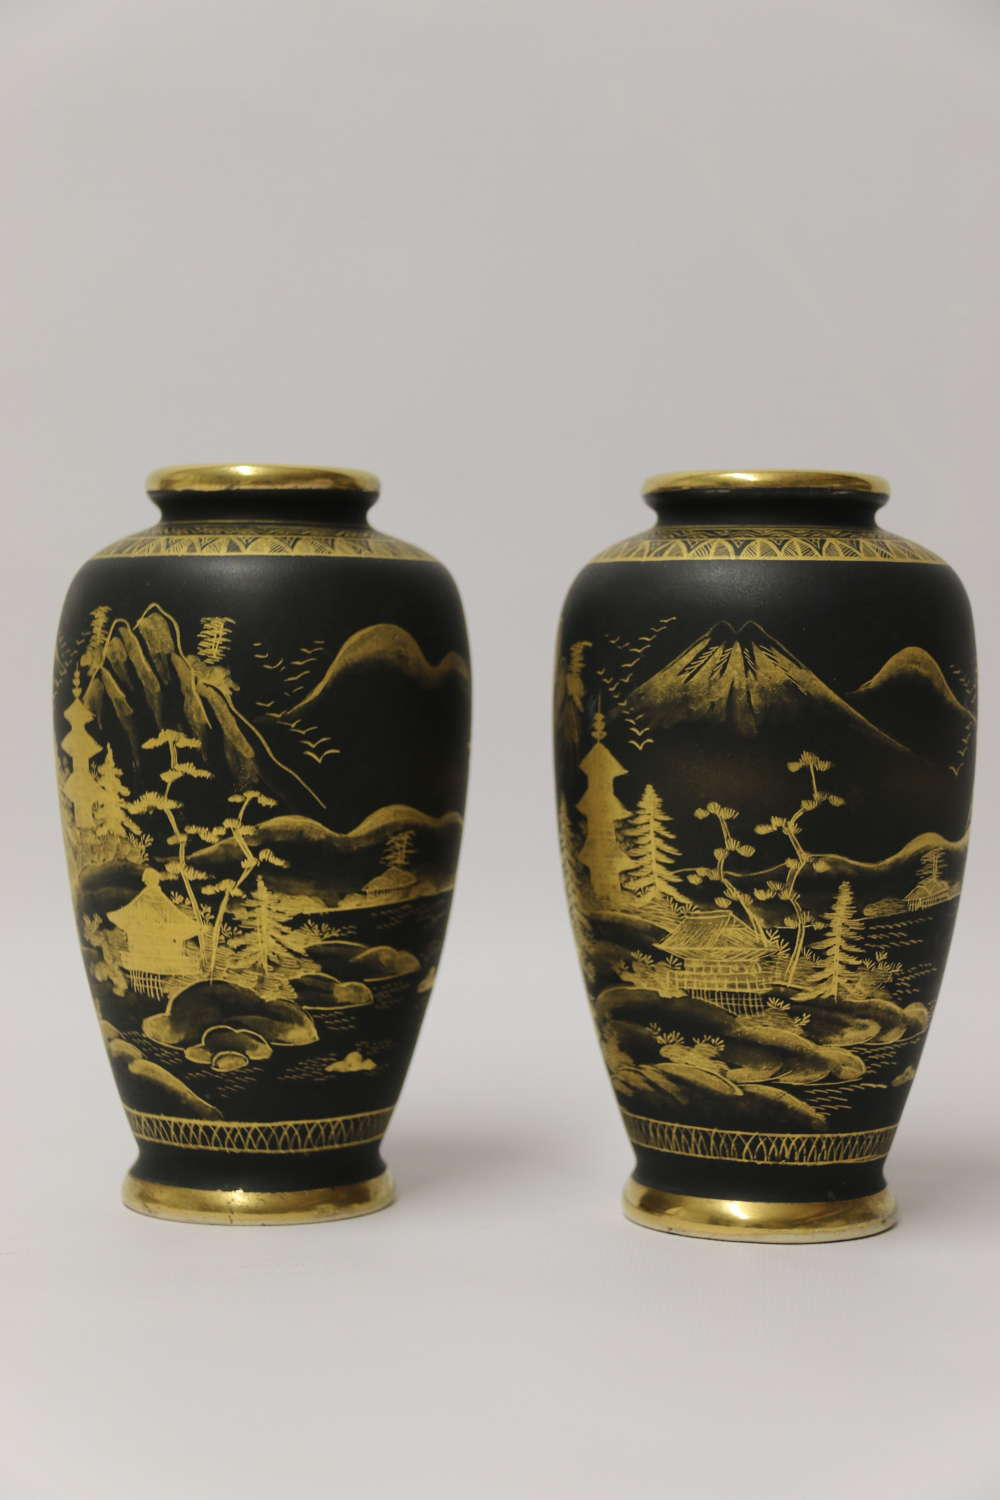 A fine pair of Japanese early 20th C  Satsuma vases